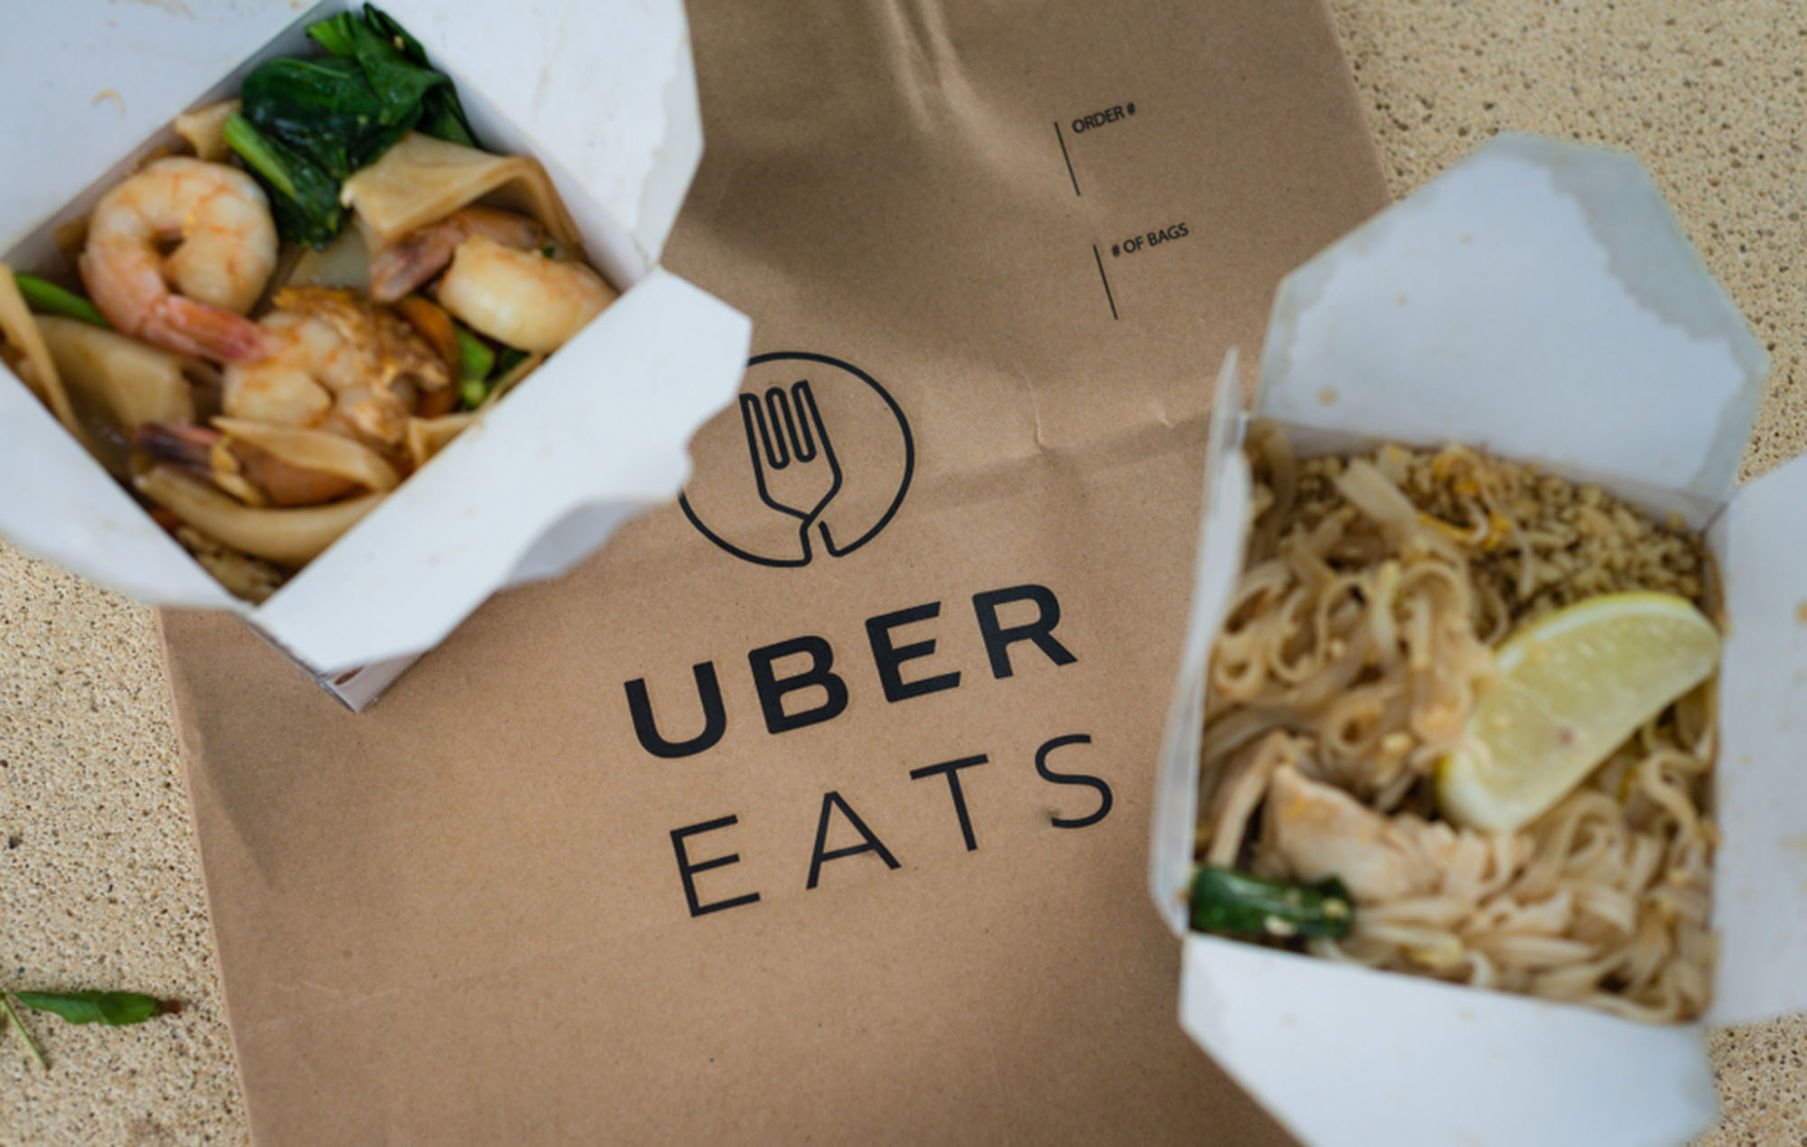 Uber Eats Uber Eats launches in Skagit